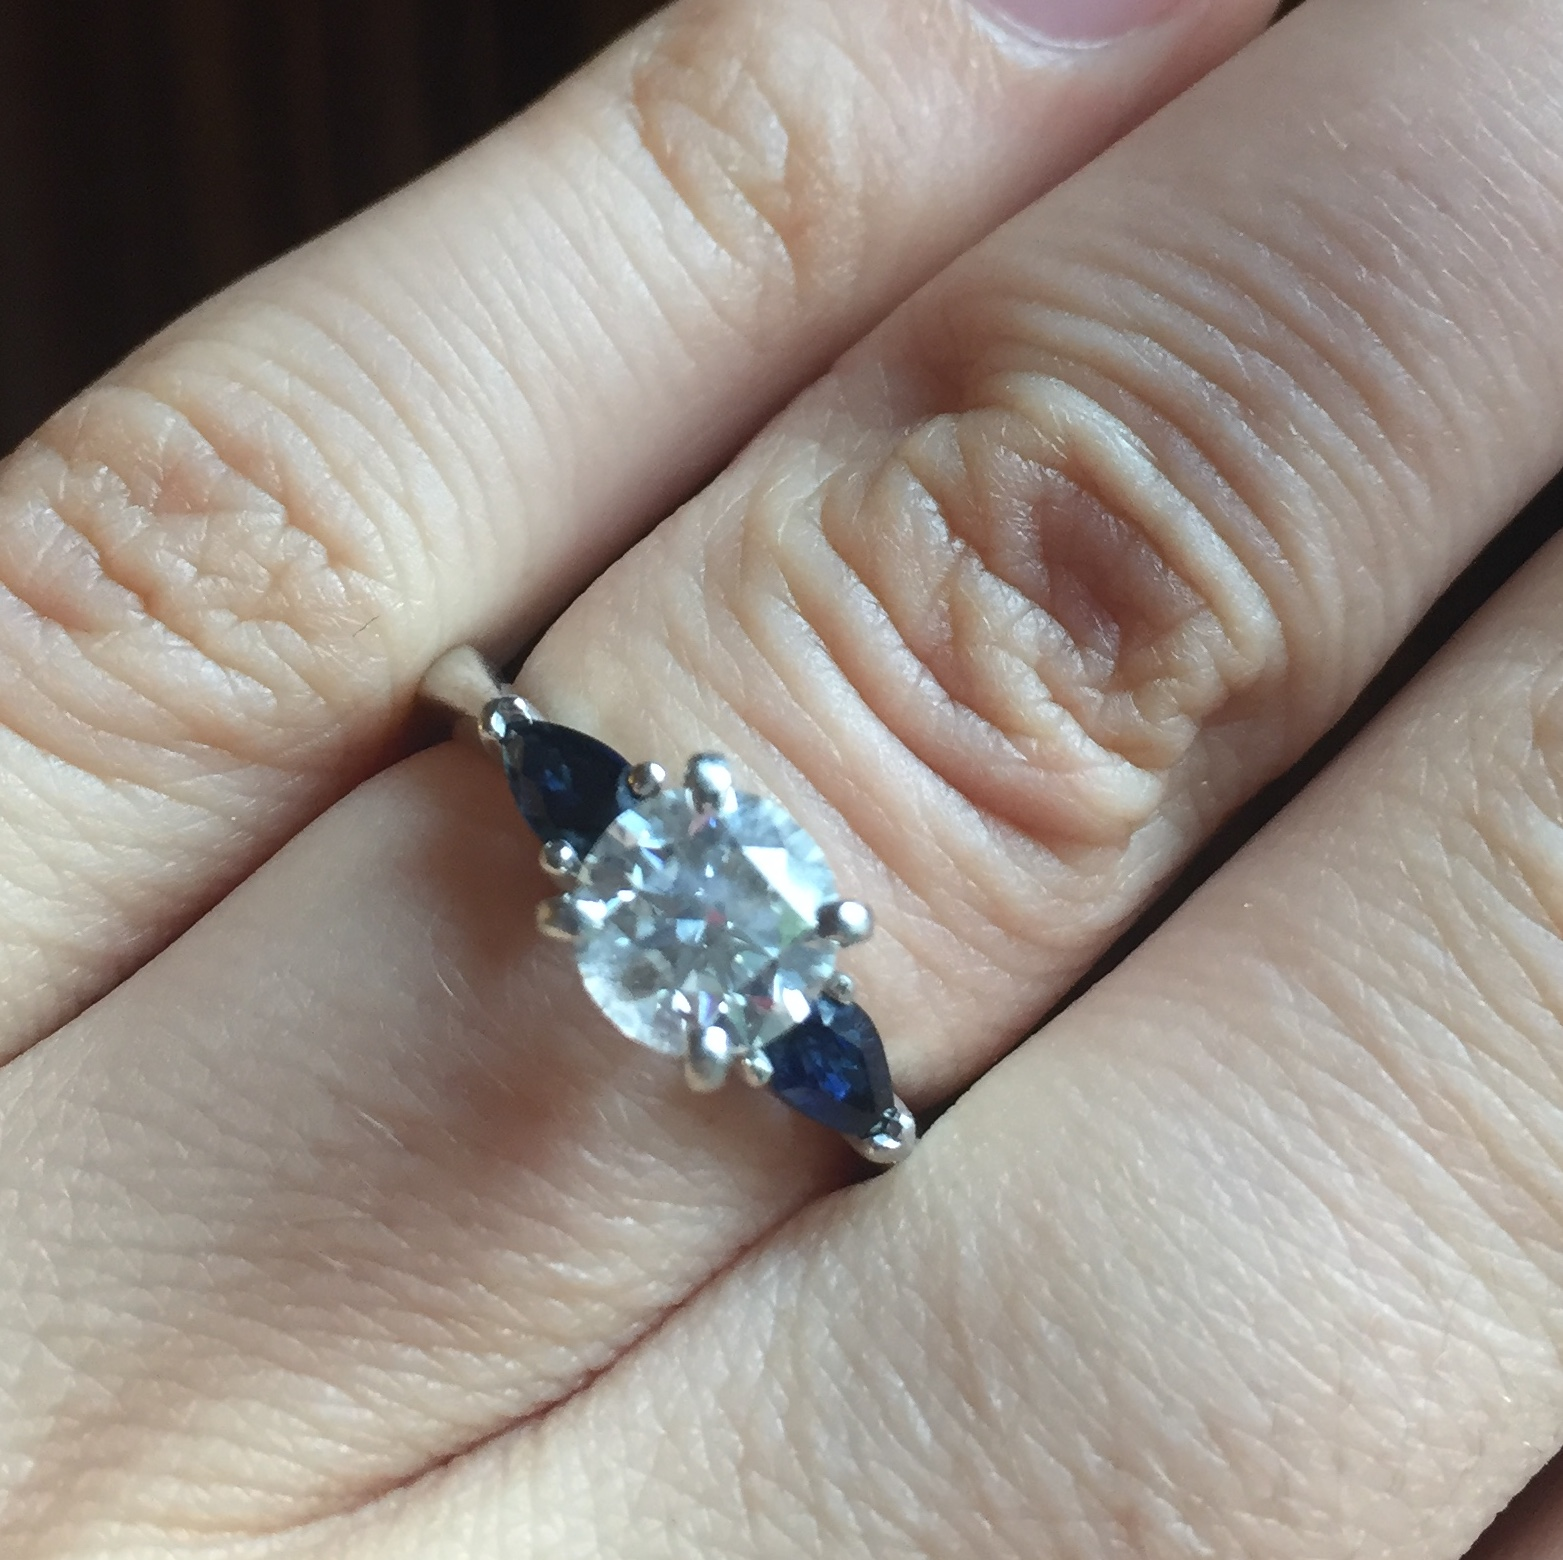 Blue Nile High Quality Gia Certified Diamond 1 00 Ct With Sapphires Set In Platinum Band I Do Now I Don T